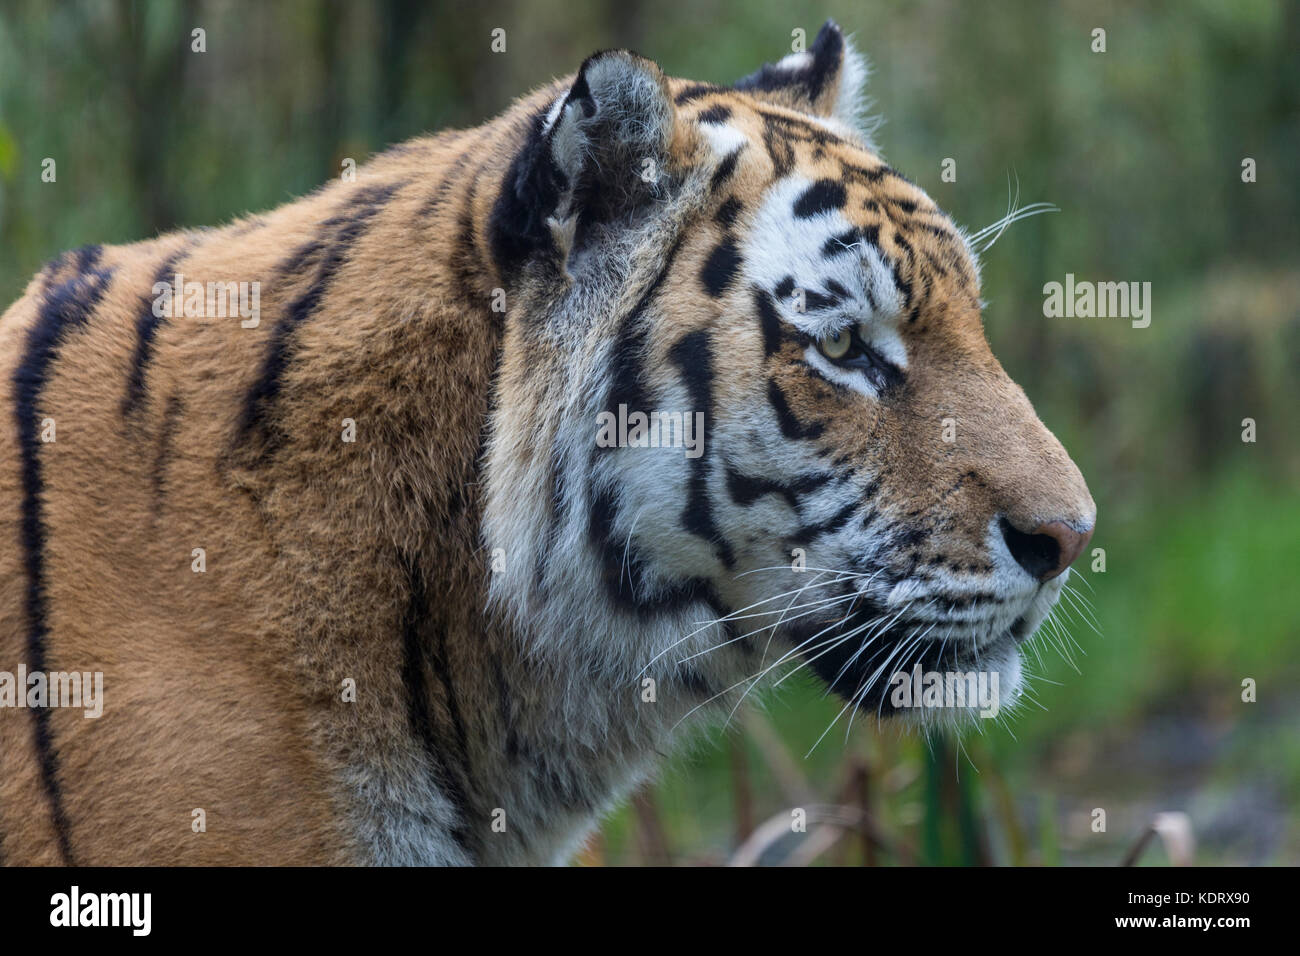 An Amur Tiger or Siberian Tiger - Northeast China and eastern Siberia in Russia. Panthera tigris. - Stock Image